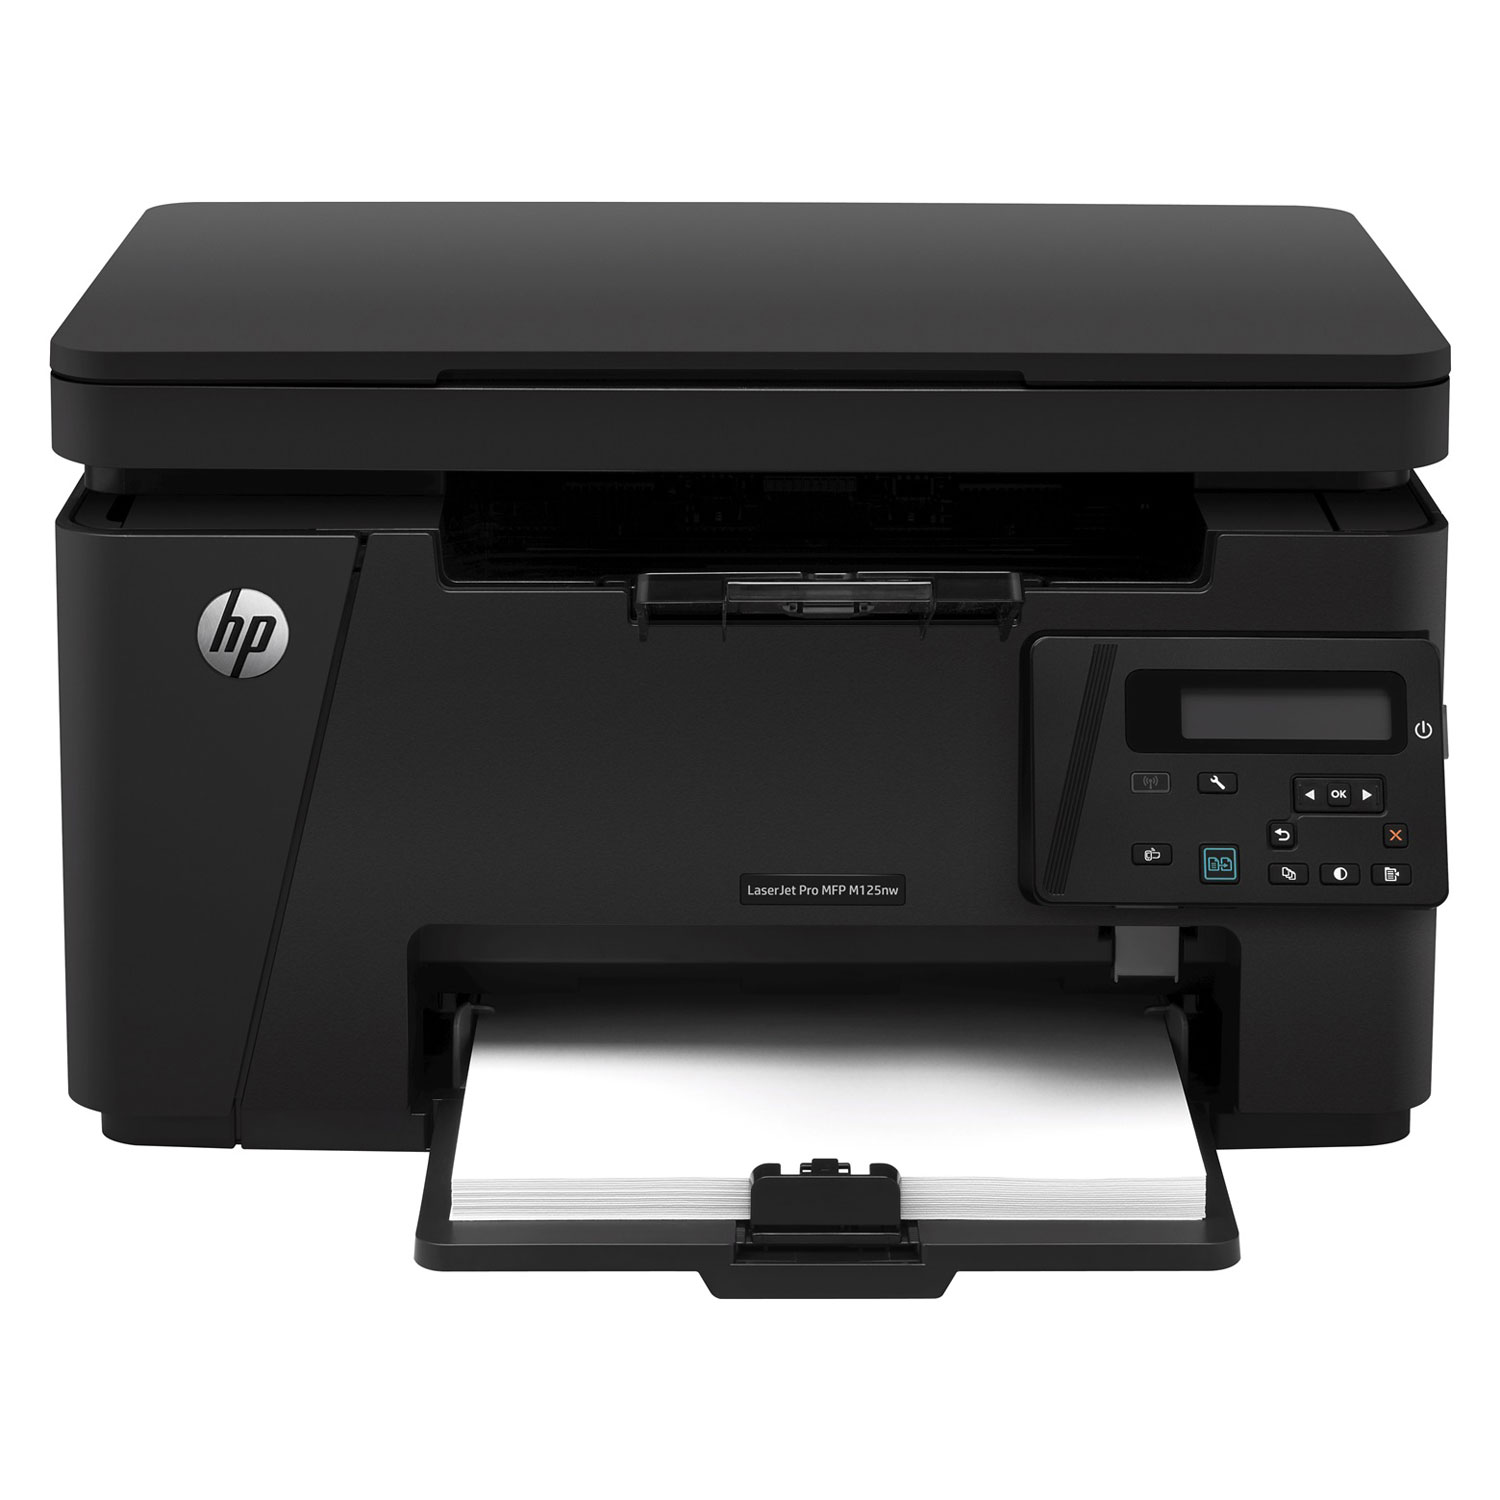 hp laserjet pro mfp m125nw imprimante multifonction hp. Black Bedroom Furniture Sets. Home Design Ideas